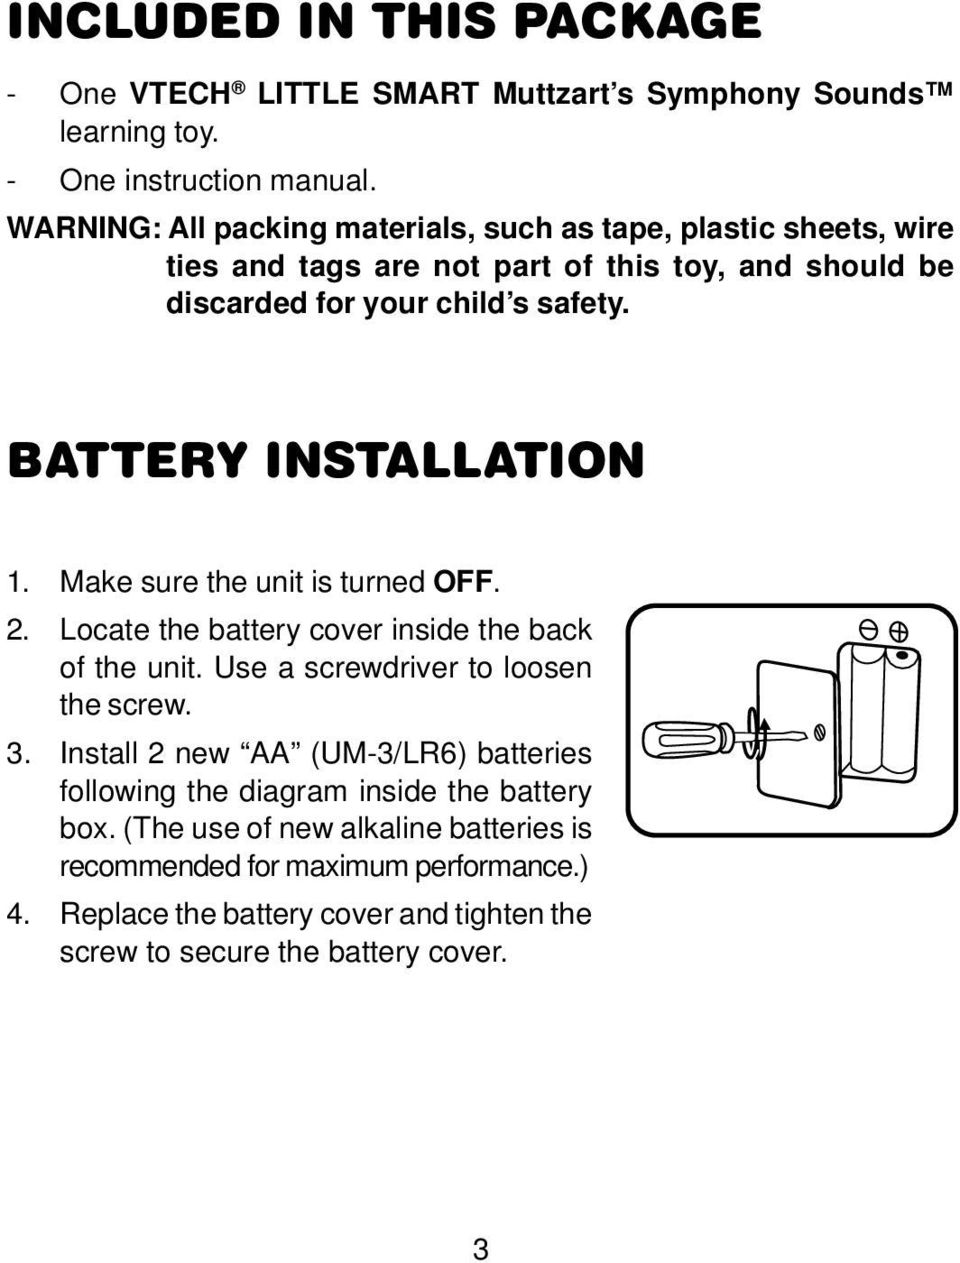 BATTERY INSTALLATION 1. Make sure the unit is turned OFF. 2. Locate the battery cover inside the back of the unit. Use a screwdriver to loosen the screw. 3.